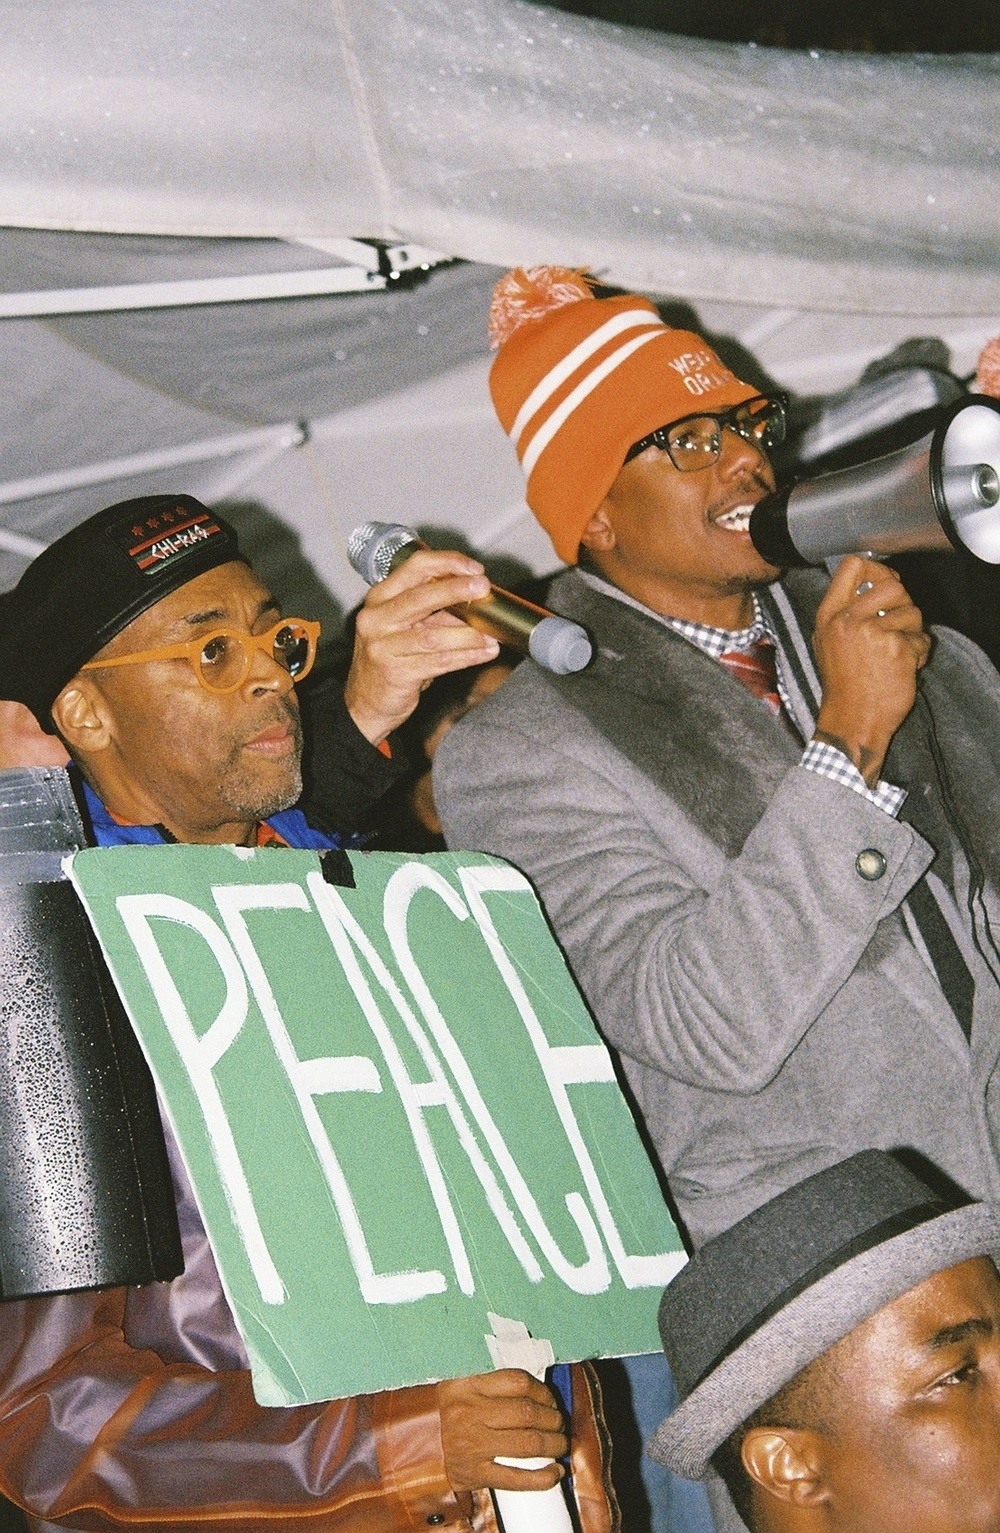 Director Spike Lee pushes an anti-gun sentiment with actor Nick Cannon.